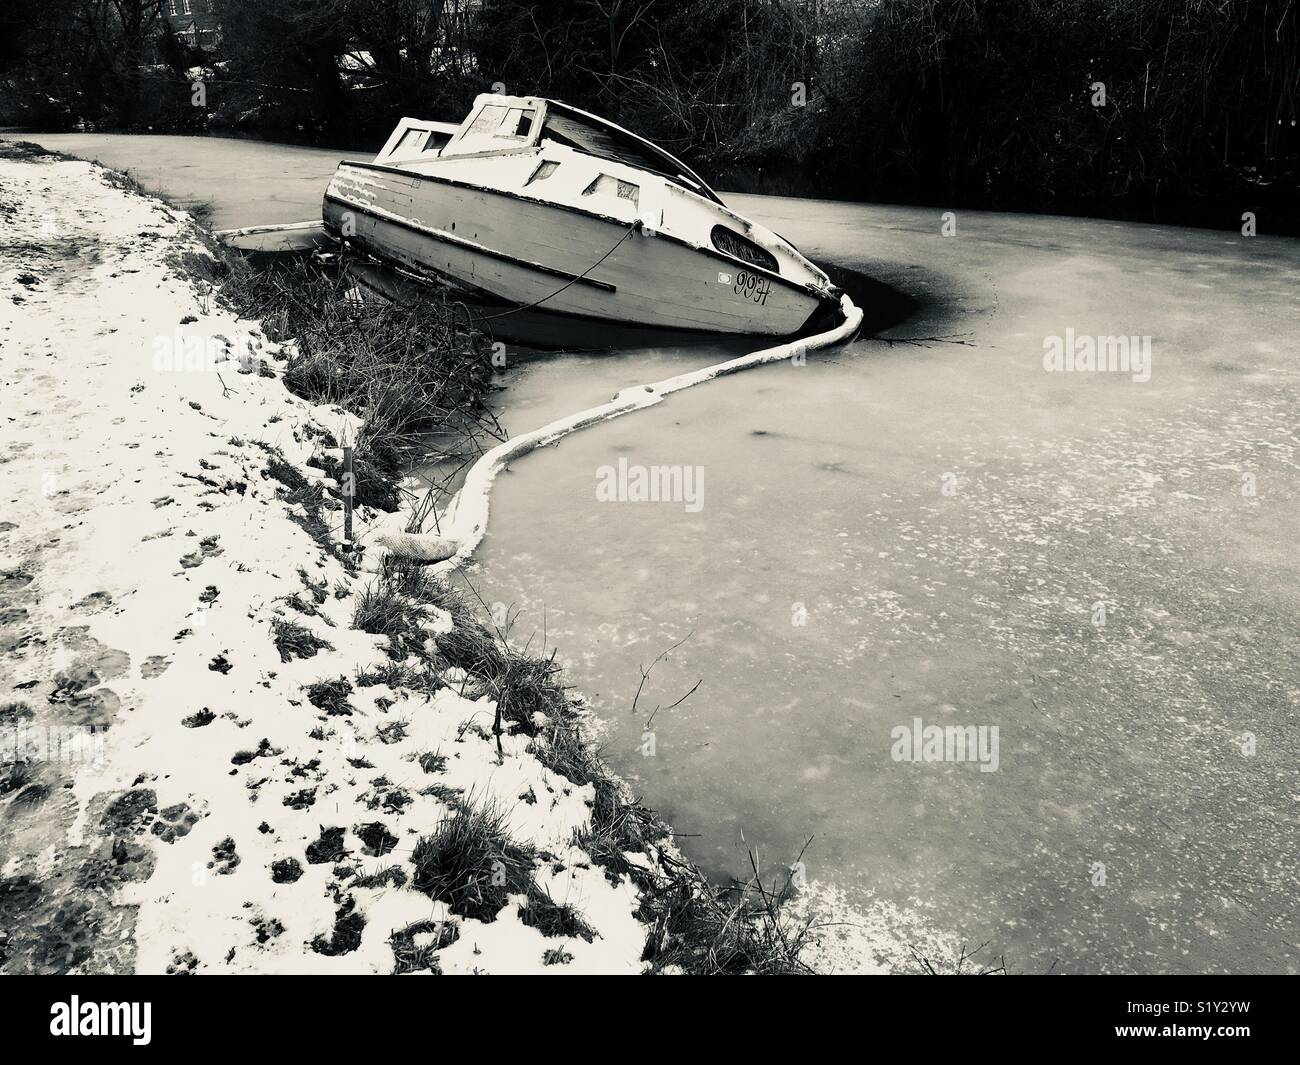 A boat that has fallen over and frozen in the ice on the river - Stock Image